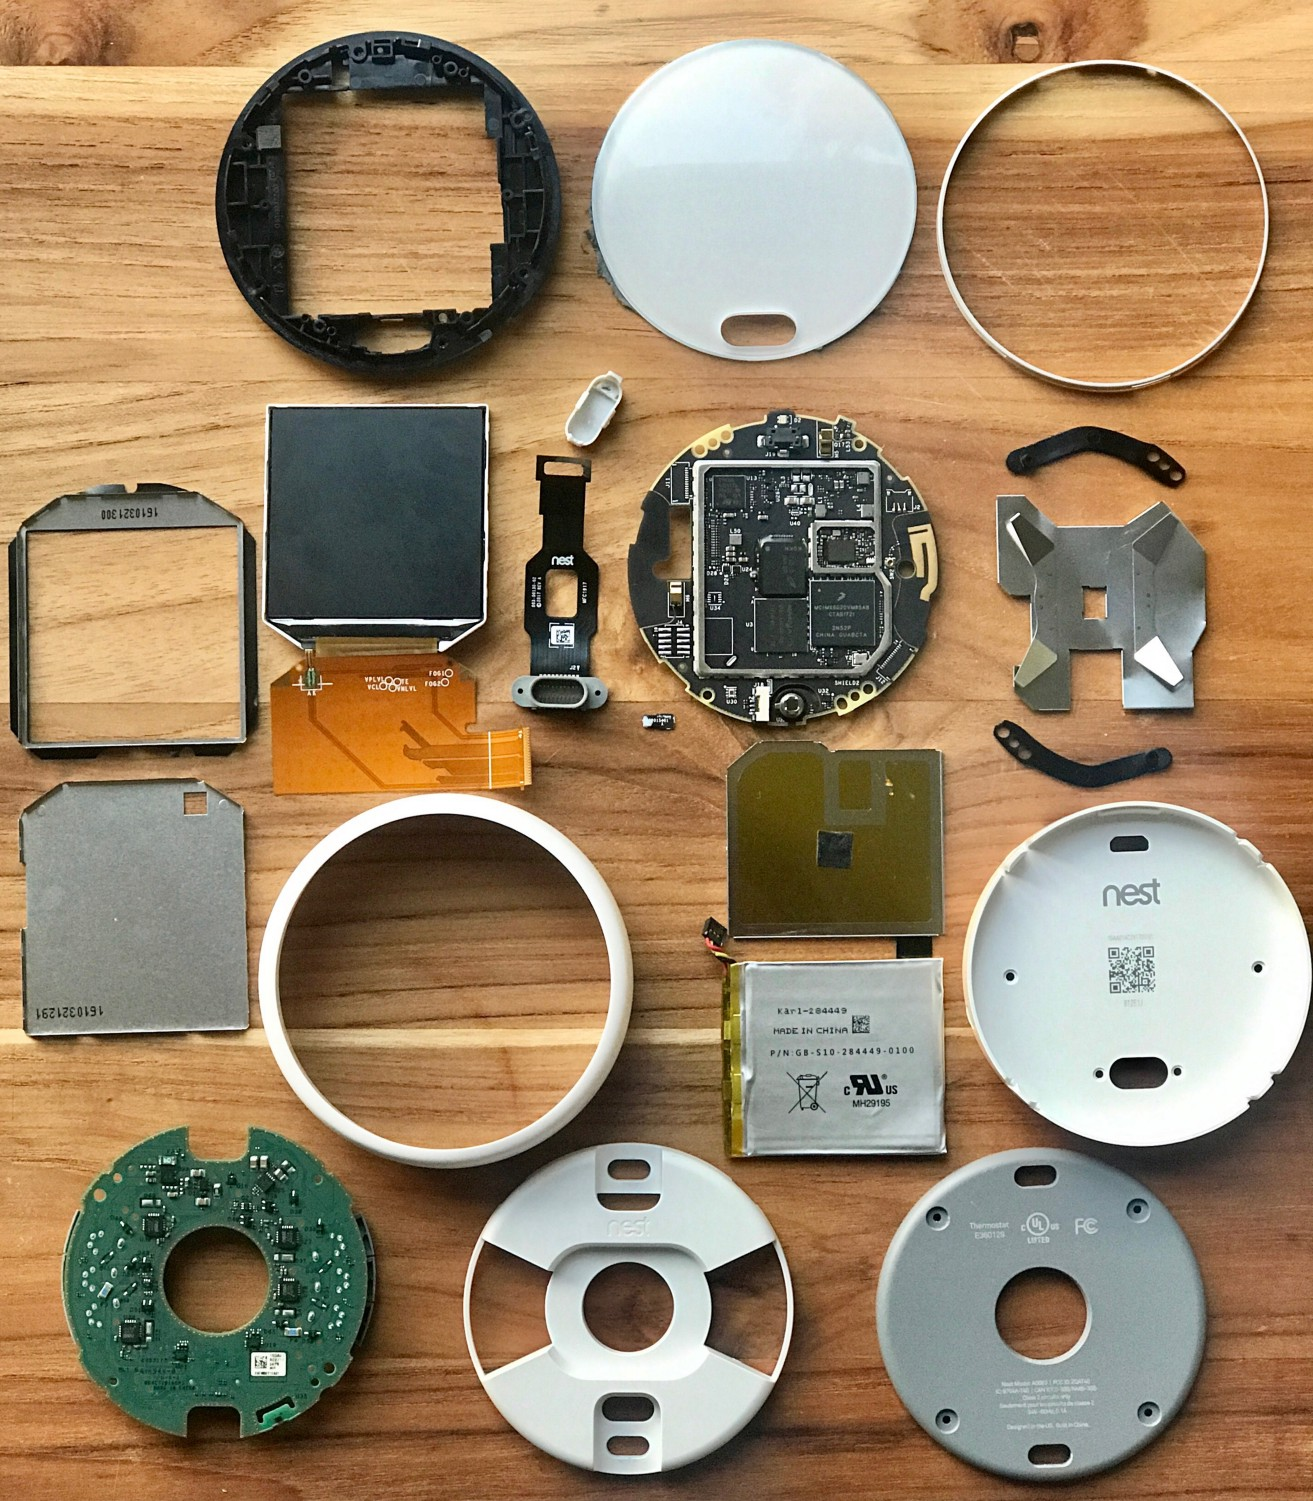 Nest Thermostat E teardown, and on making beautiful devices for the on